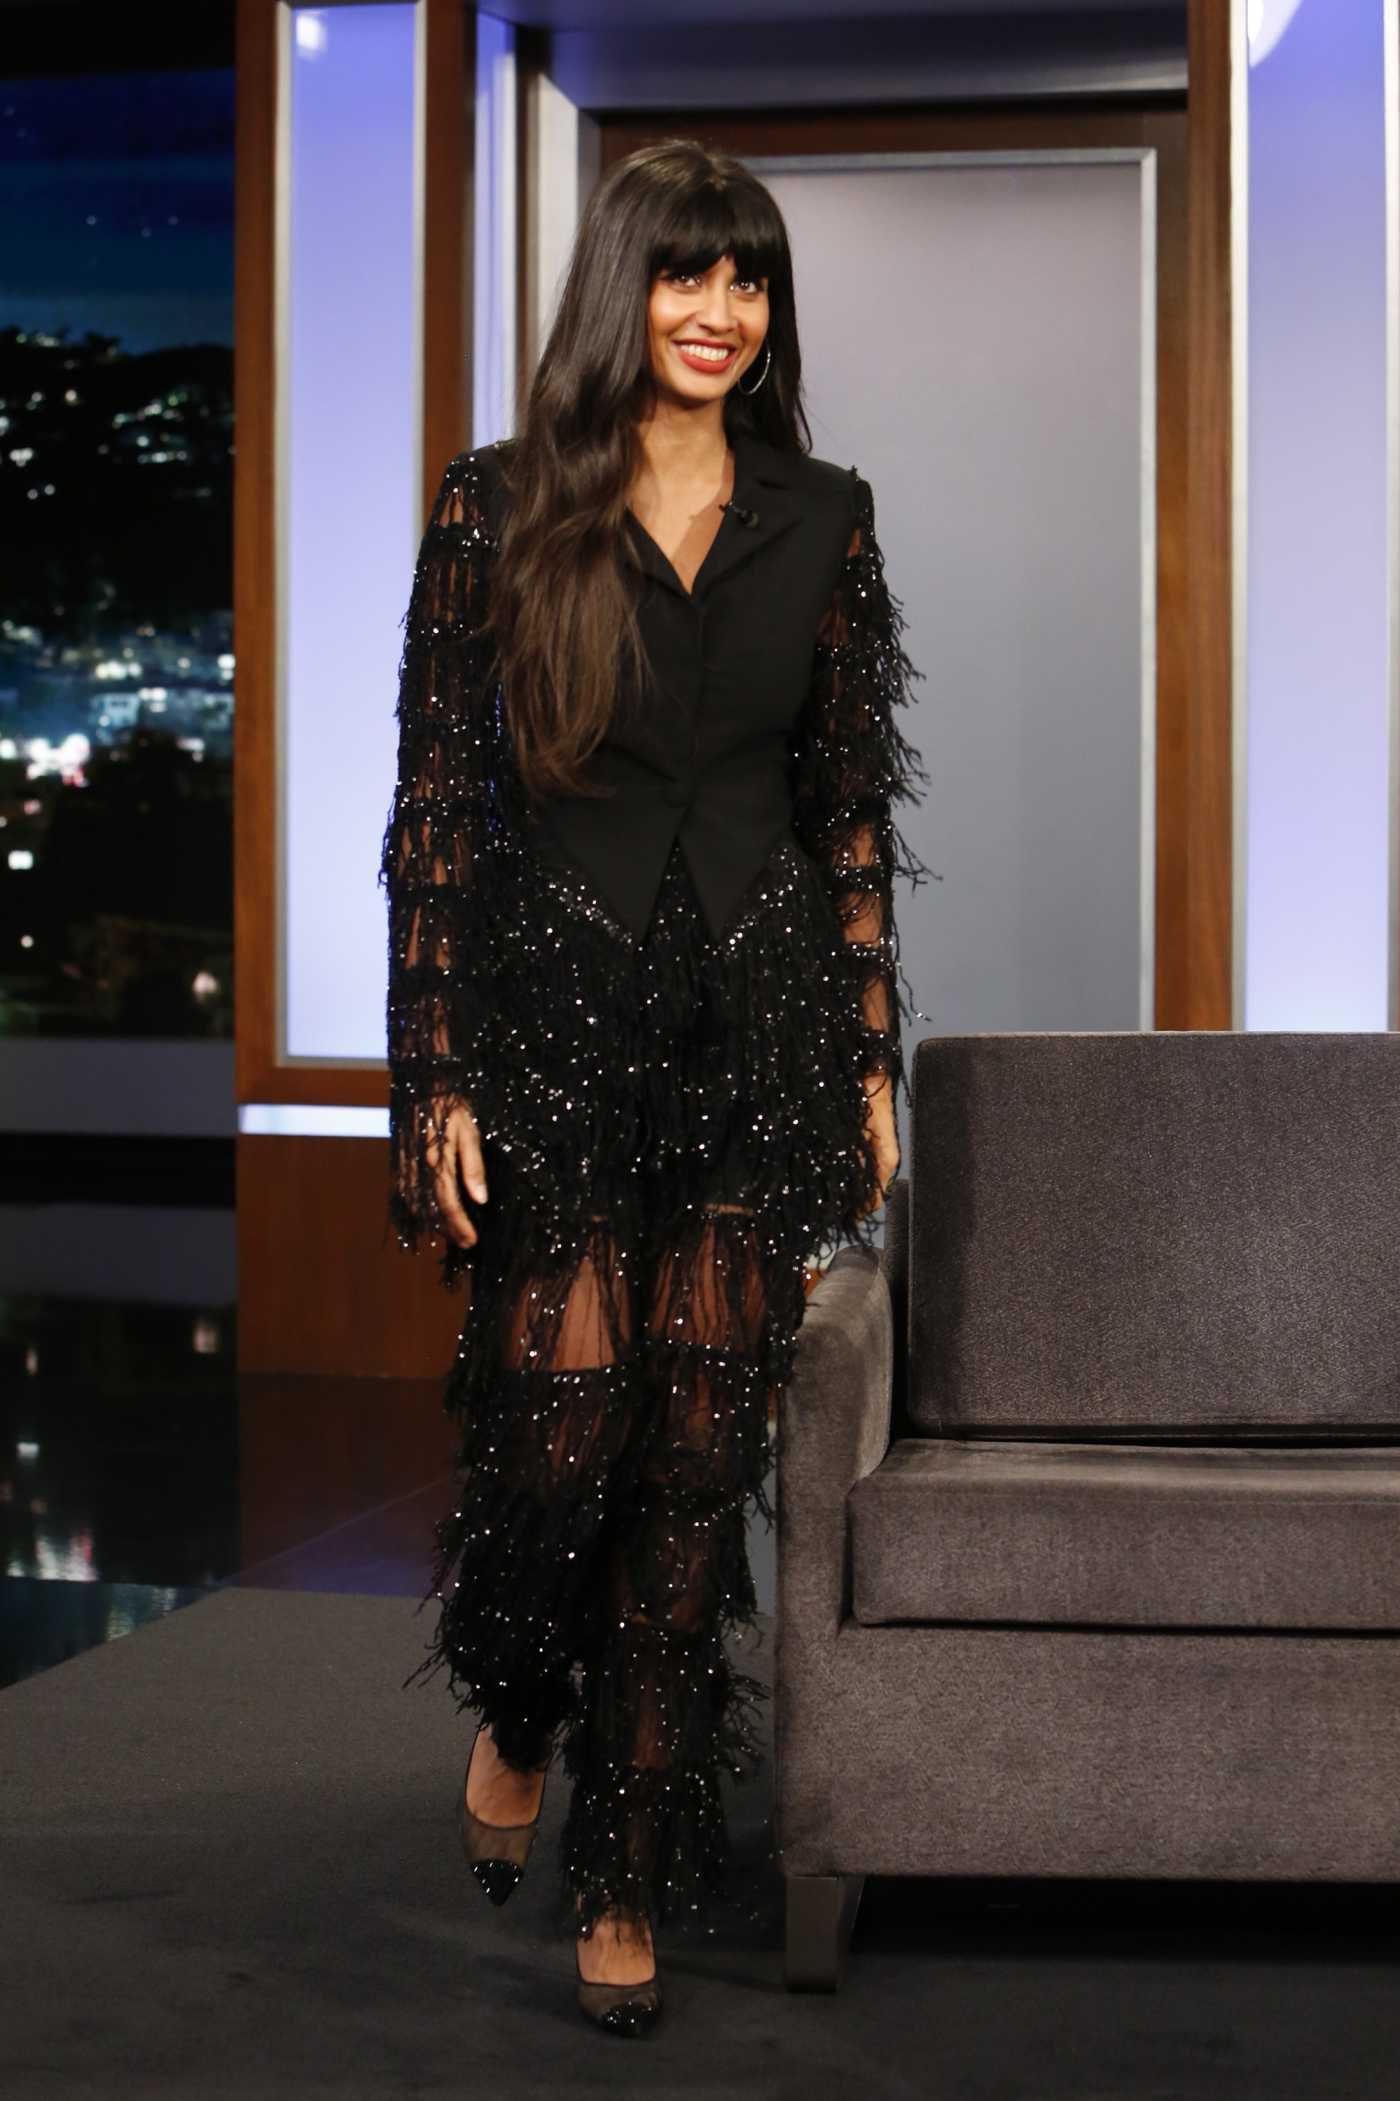 Jameela Jamil Attends Jimmy Kimmel Live in Hollywood 11/25/2019